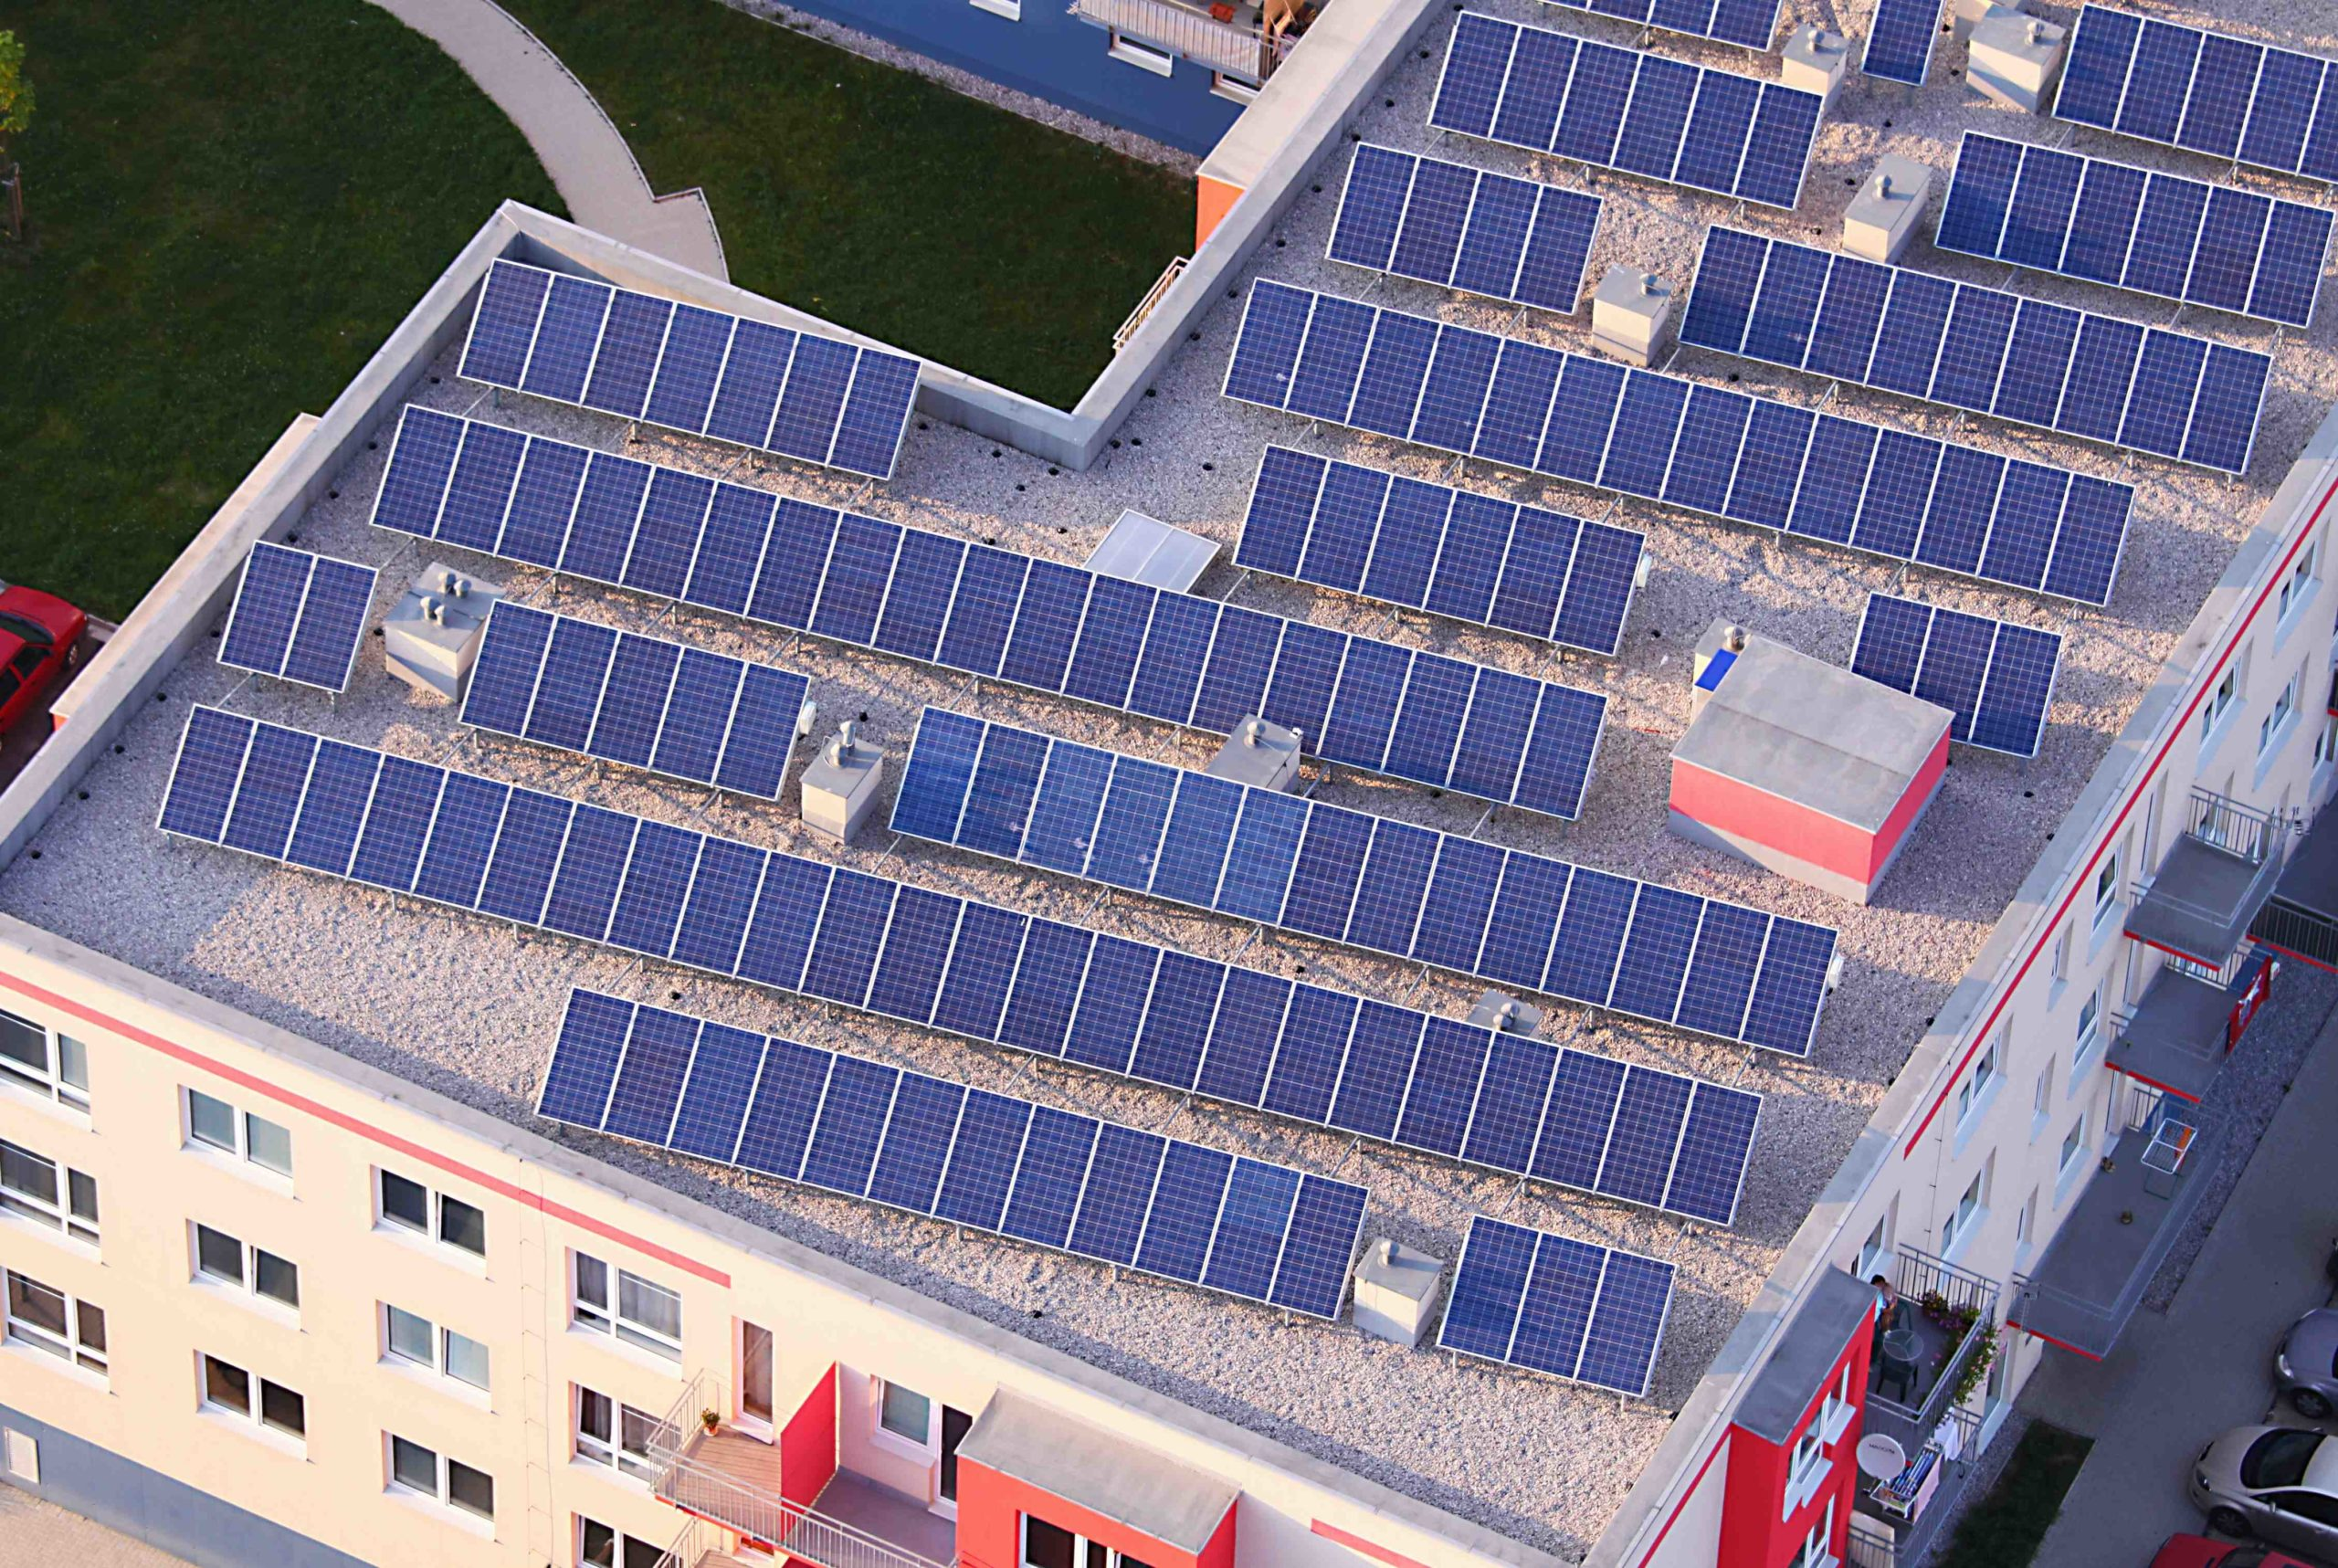 How long are solar panels financed for?